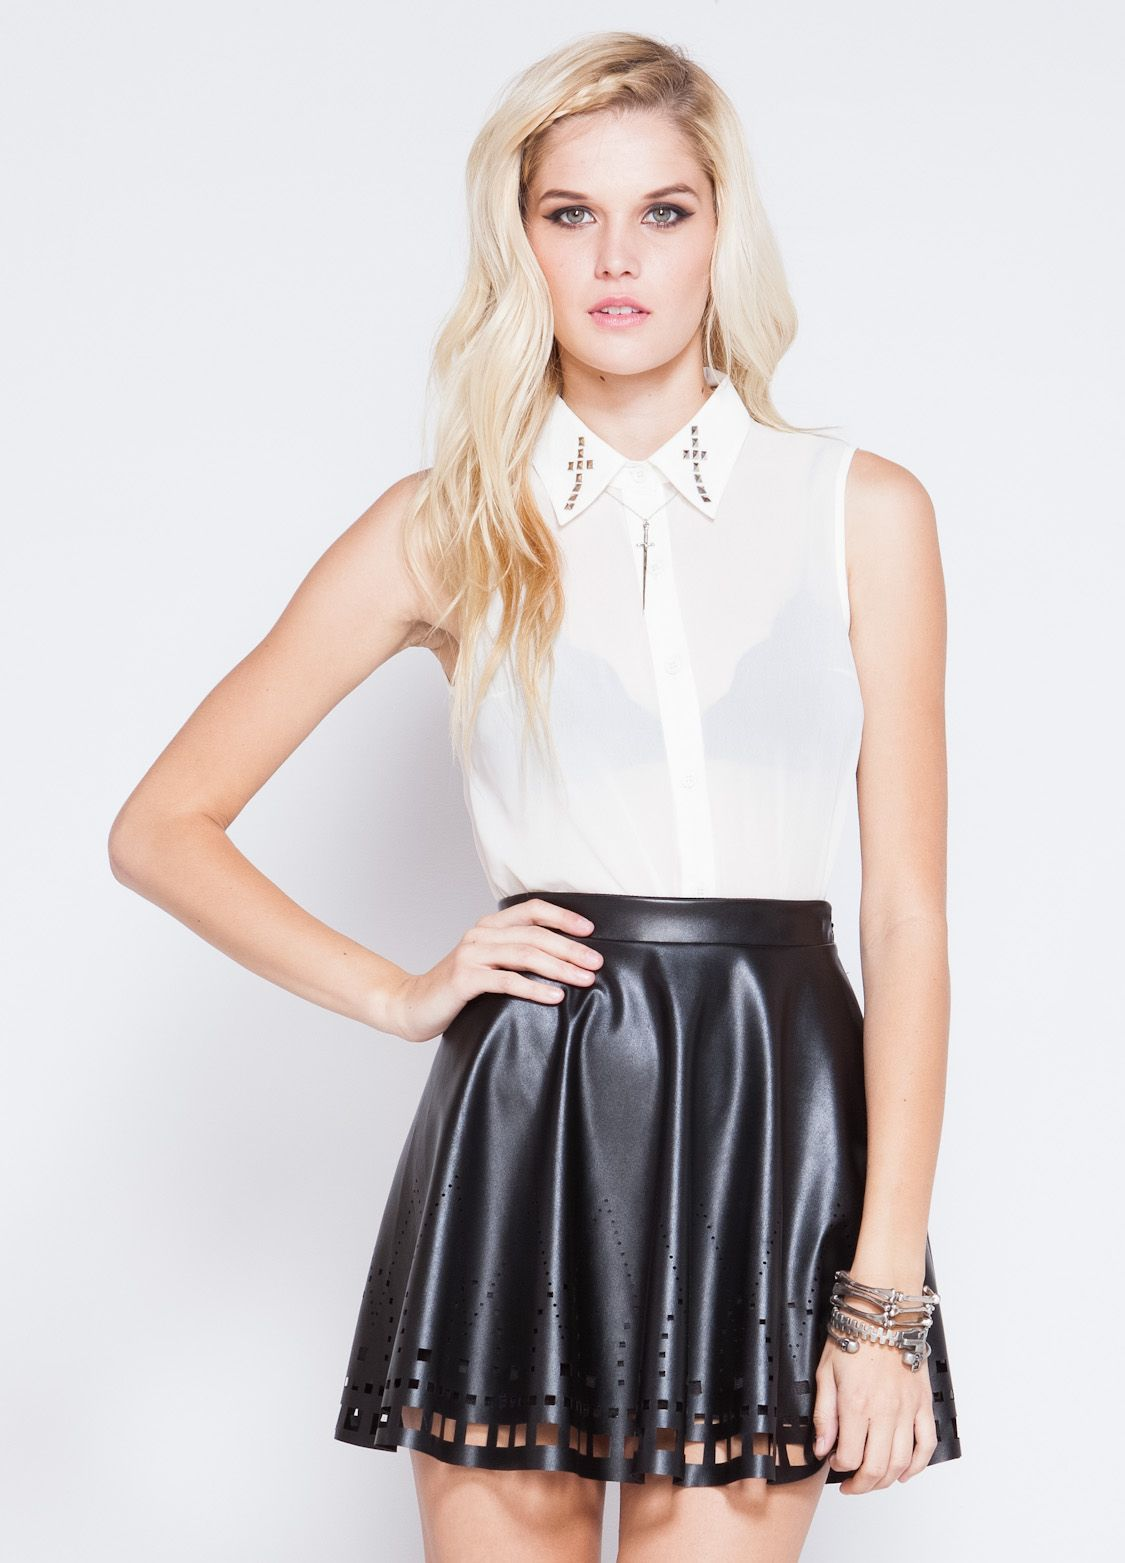 32ce07e4c2 Faux leather skater skirt with cut-out detail at bottom. Zipper back  closure. 100% polyester 18 length Model is wearing size S